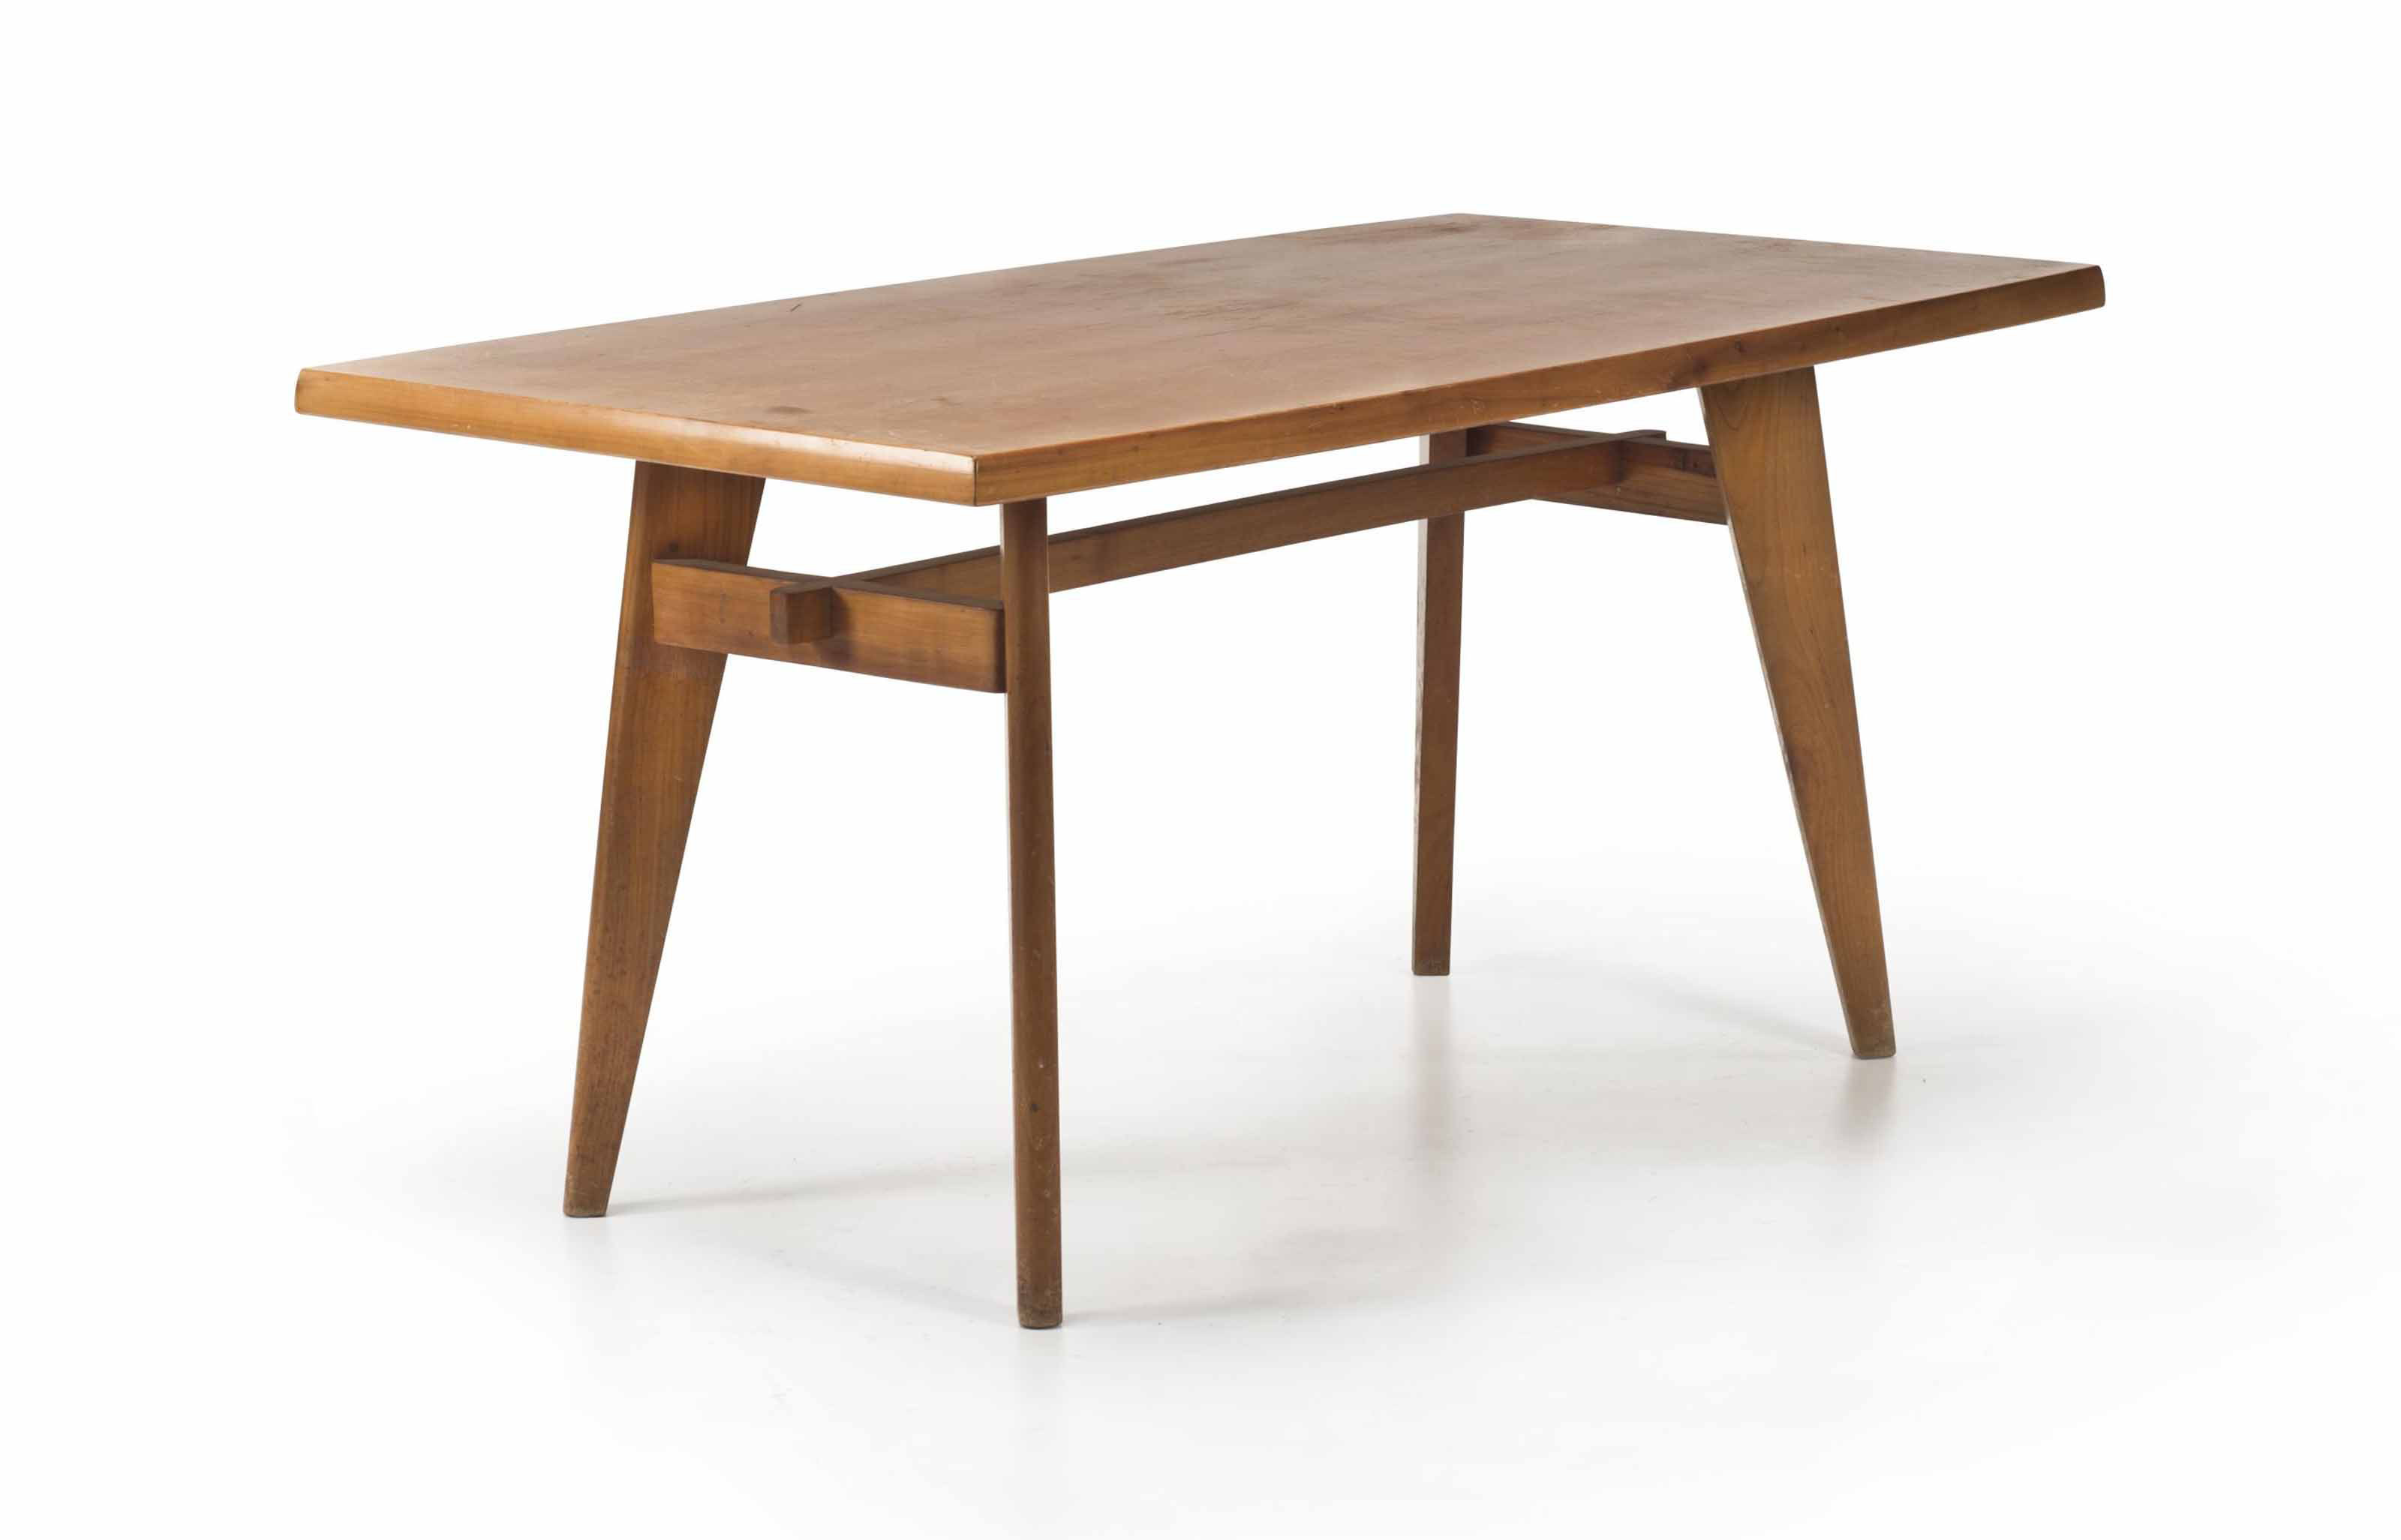 Charlotte perriand 1903 1999 et pierre jeanneret 1896 1967 table de salle manger - Salle de bain charlotte perriand ...